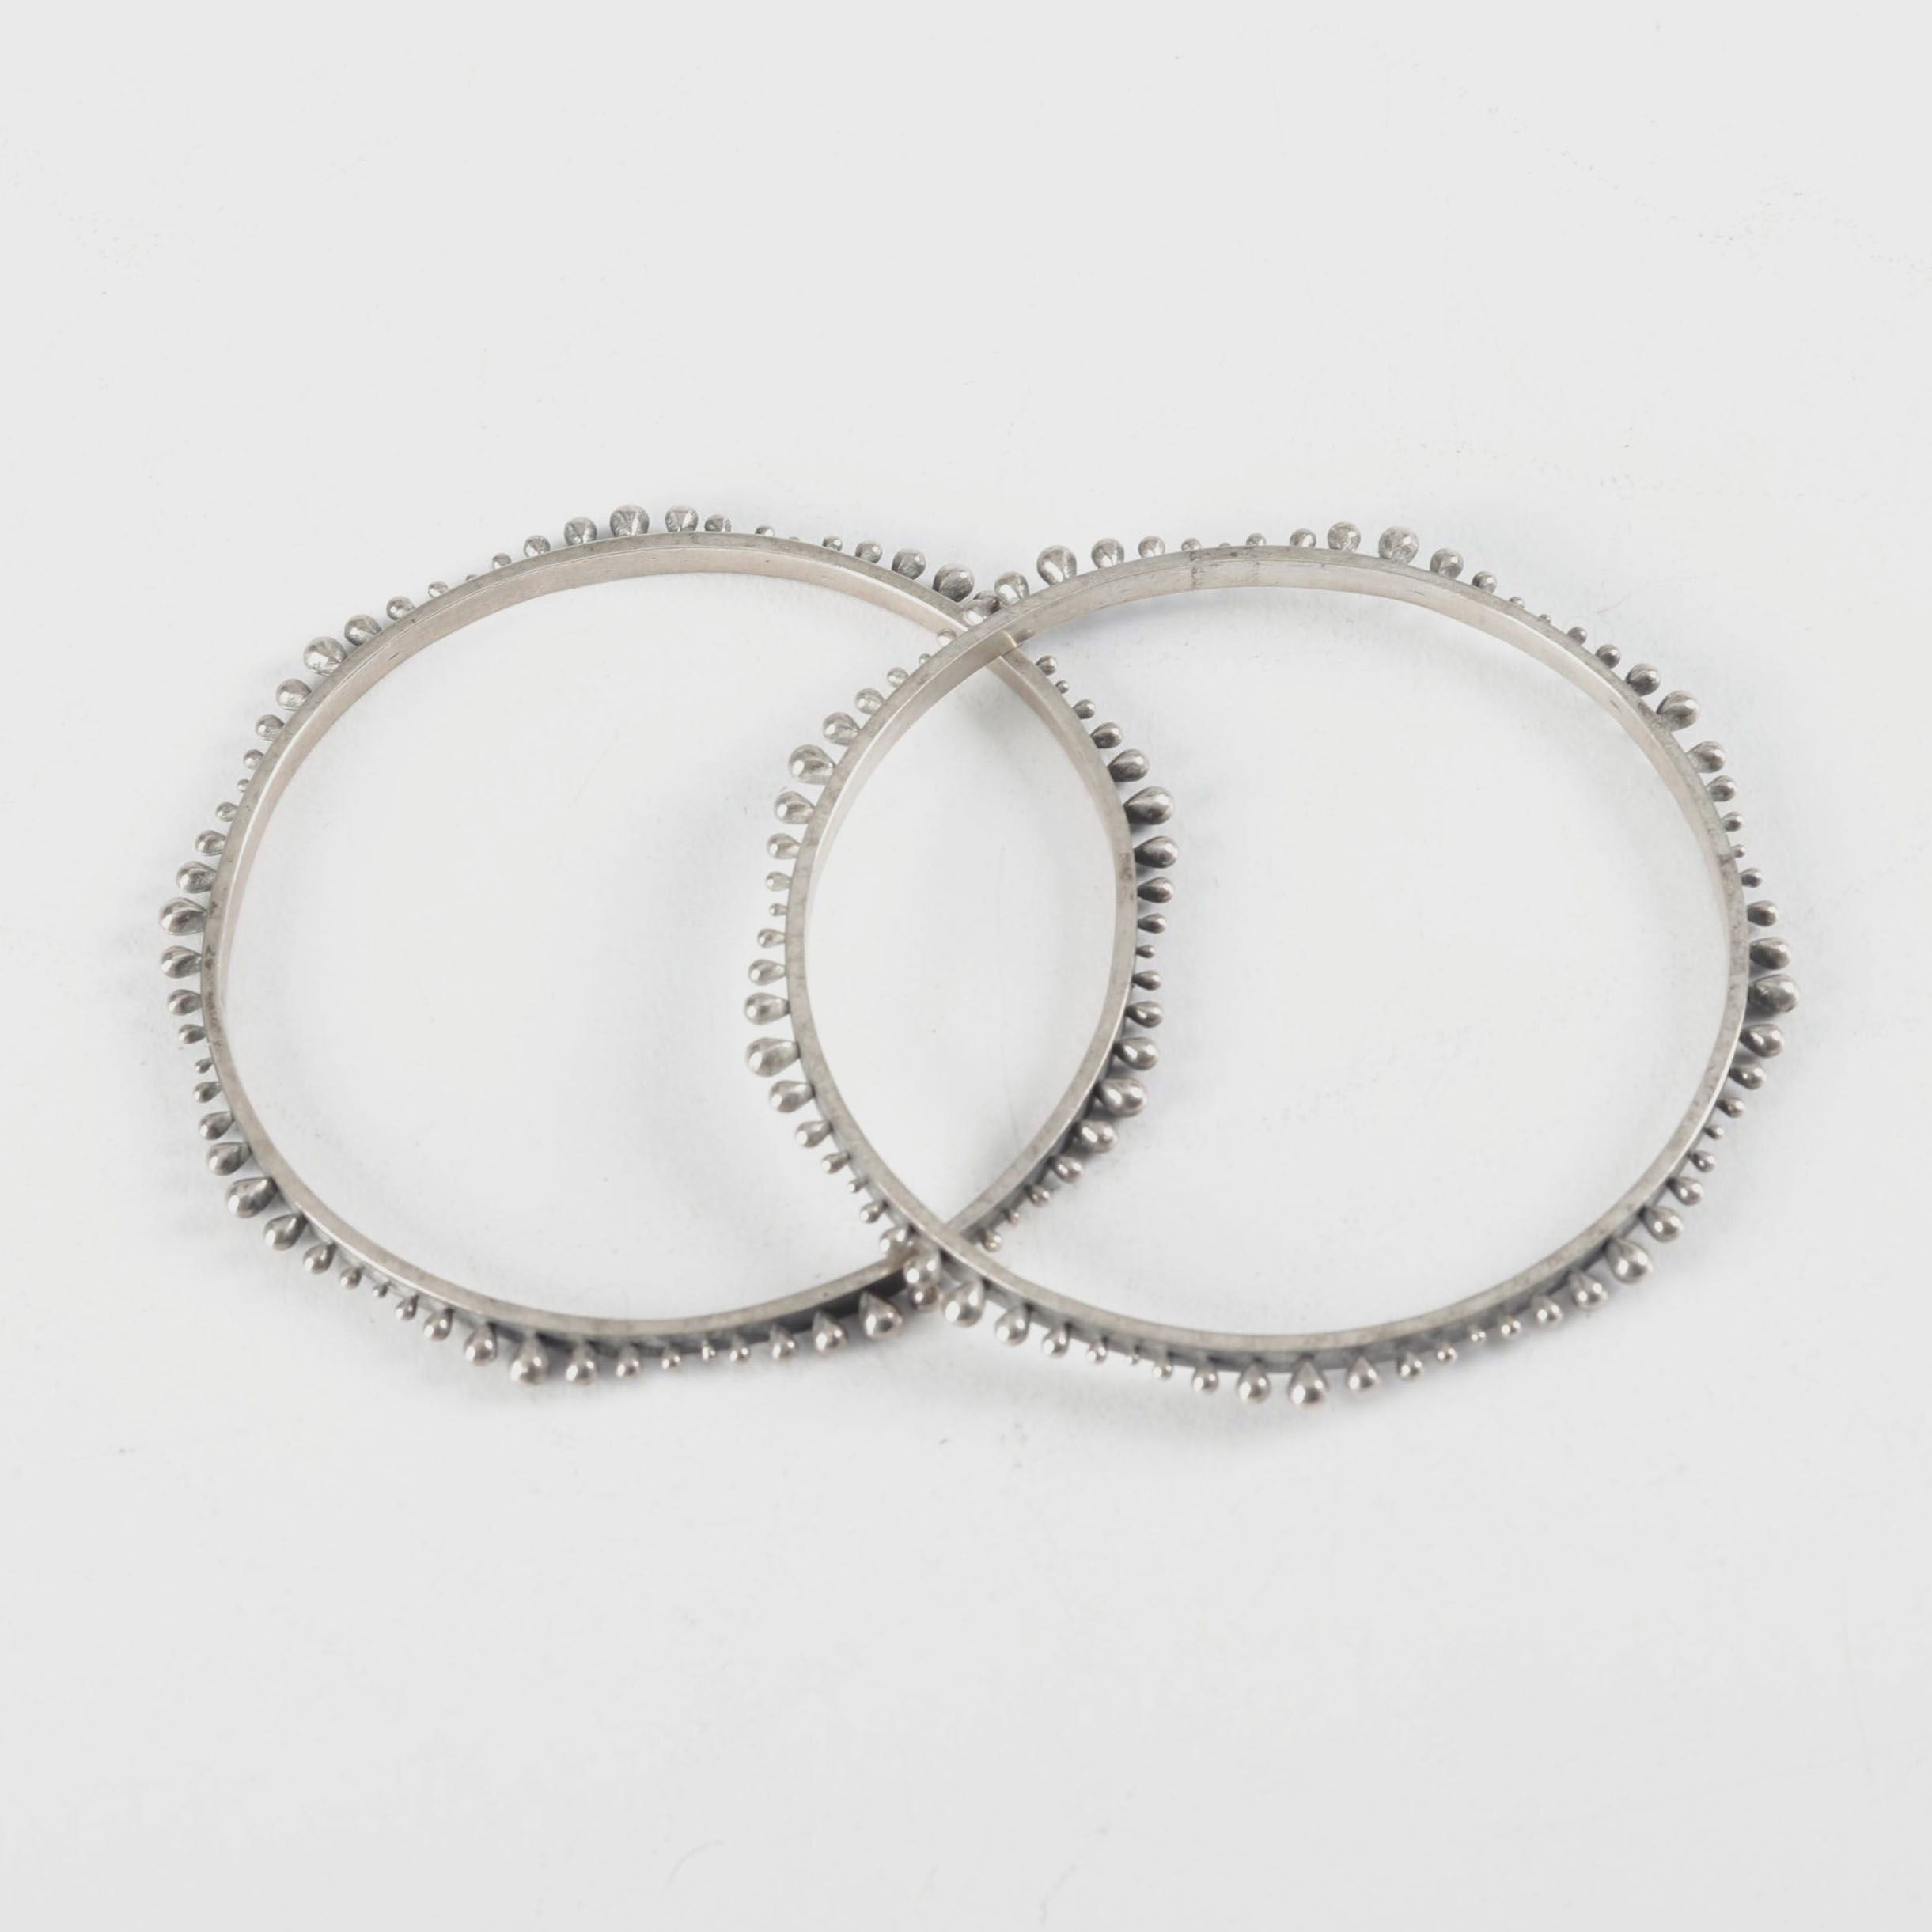 Pair of Hand Cast Sterling Silver Bangles